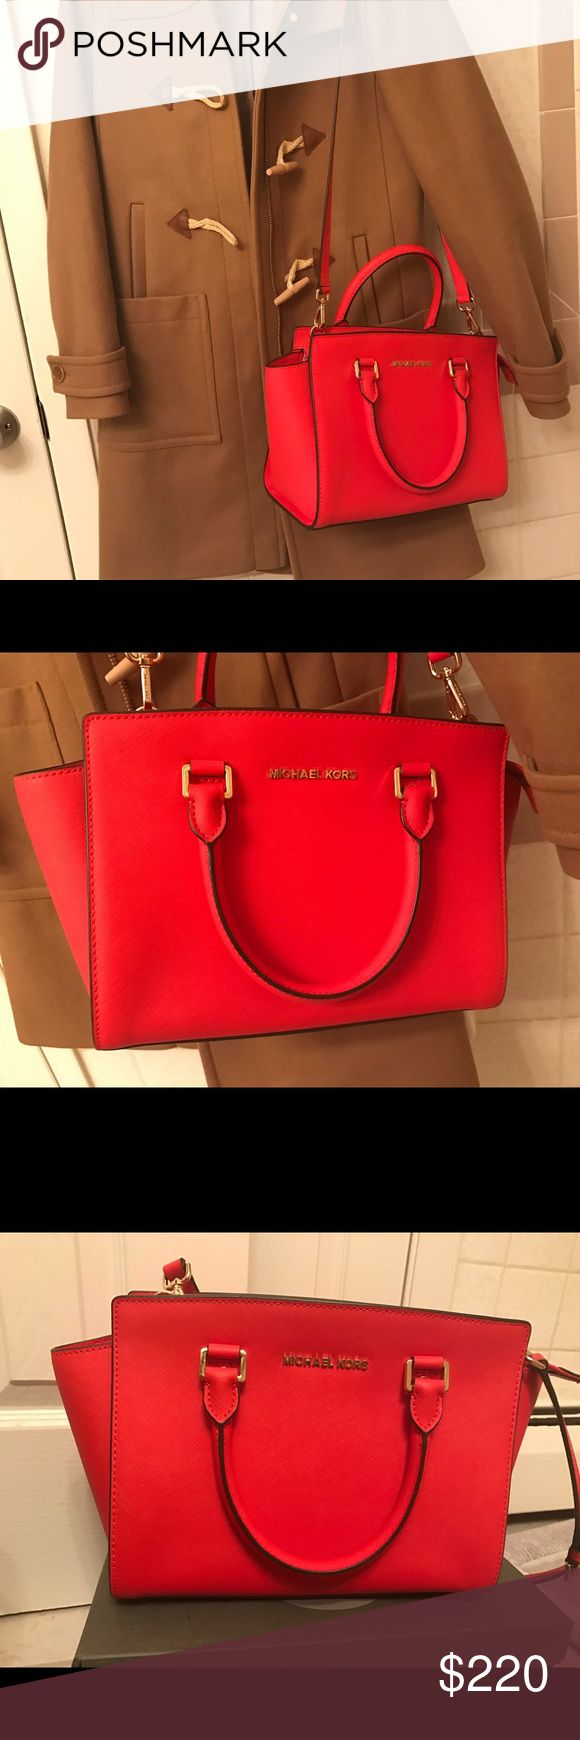 Michael kors Selma handbag medium Like new. Bought it in Nordstrom one year ago. Used twice maybe. I'm a very petite person...The bag is too large for me... ...the color is more like orange red. Very bright. it's  $298 in Nordstrom now. Michael Kors Bags Shoulder Bags